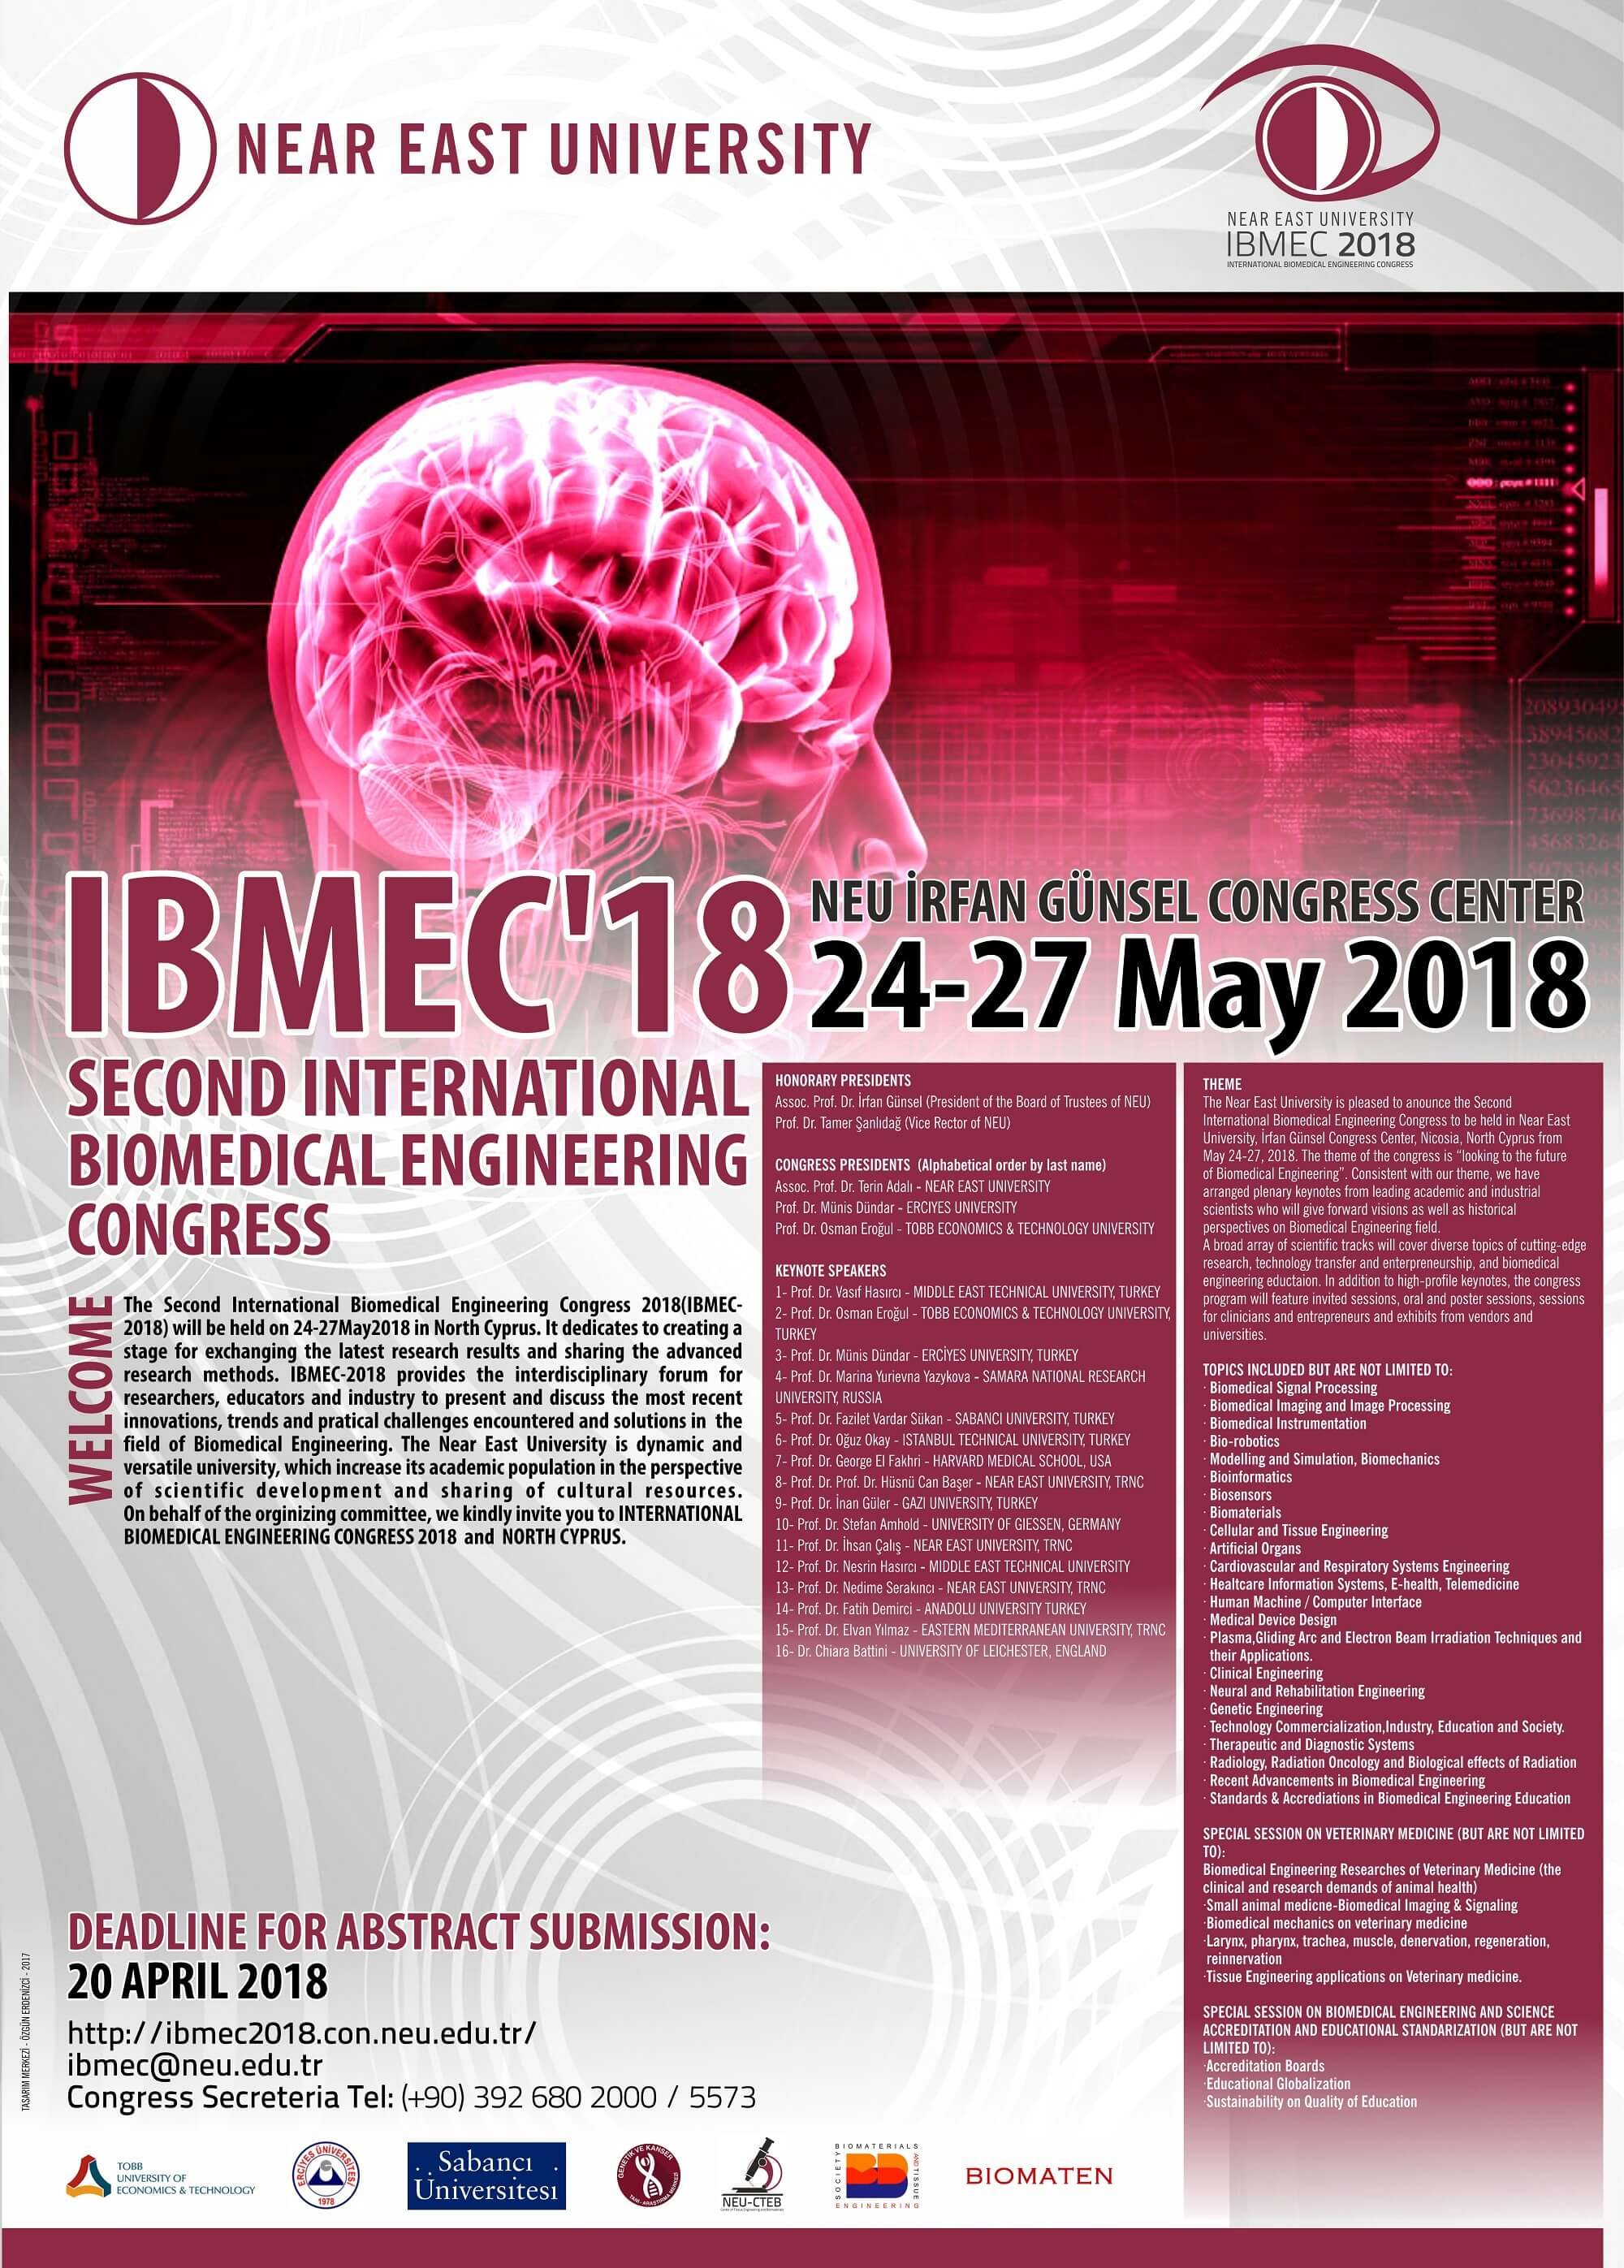 Second International Congress of Biomedical Engineering (Ibmec-2018) will be held on 24-27 May 2018